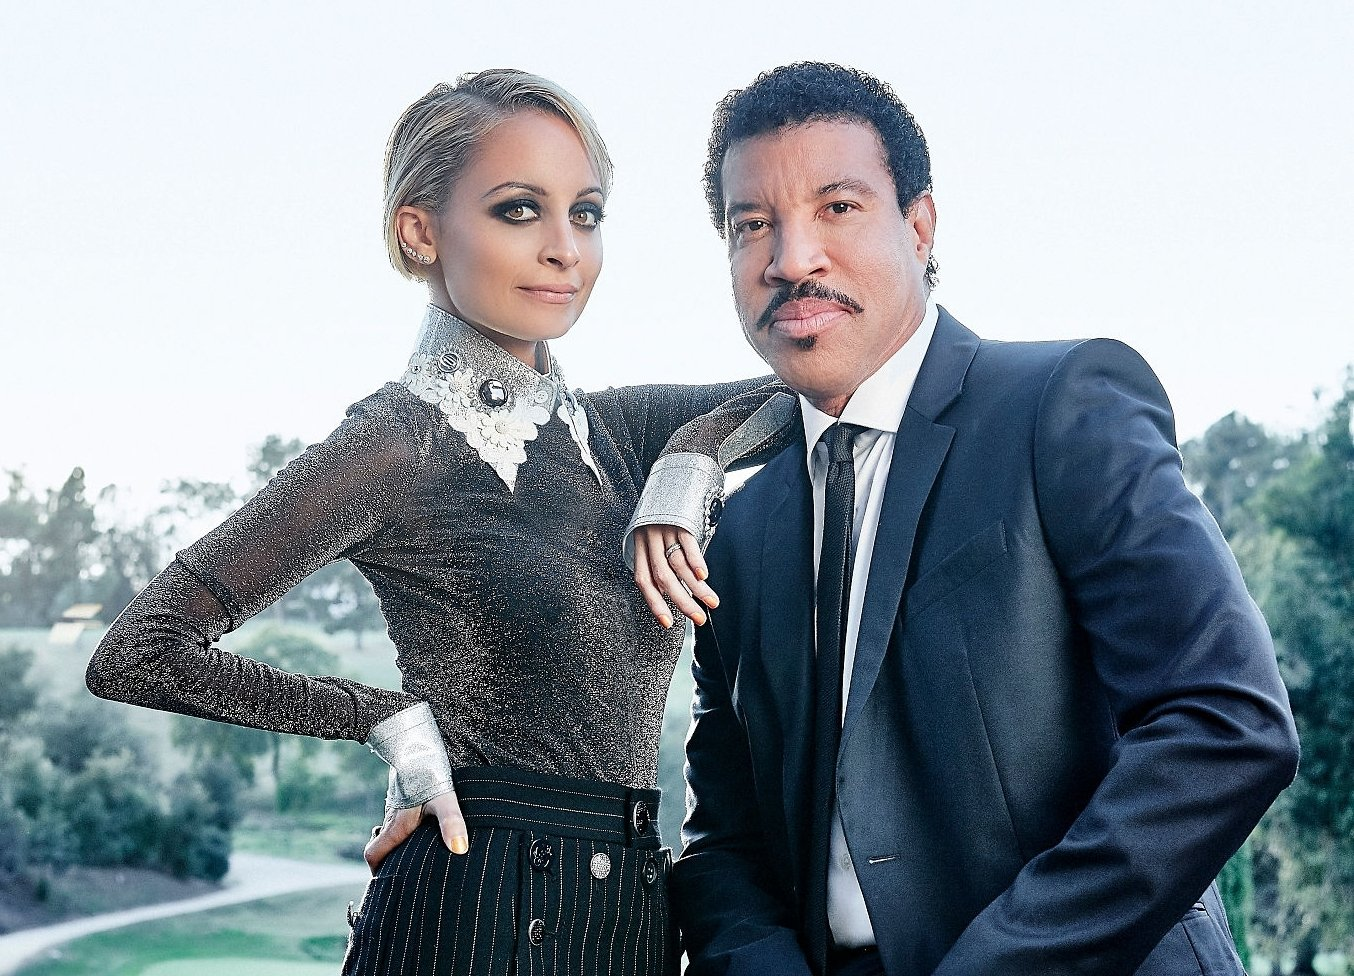 Image Credit: Getty Images/Lionel and granddaughter Nicole